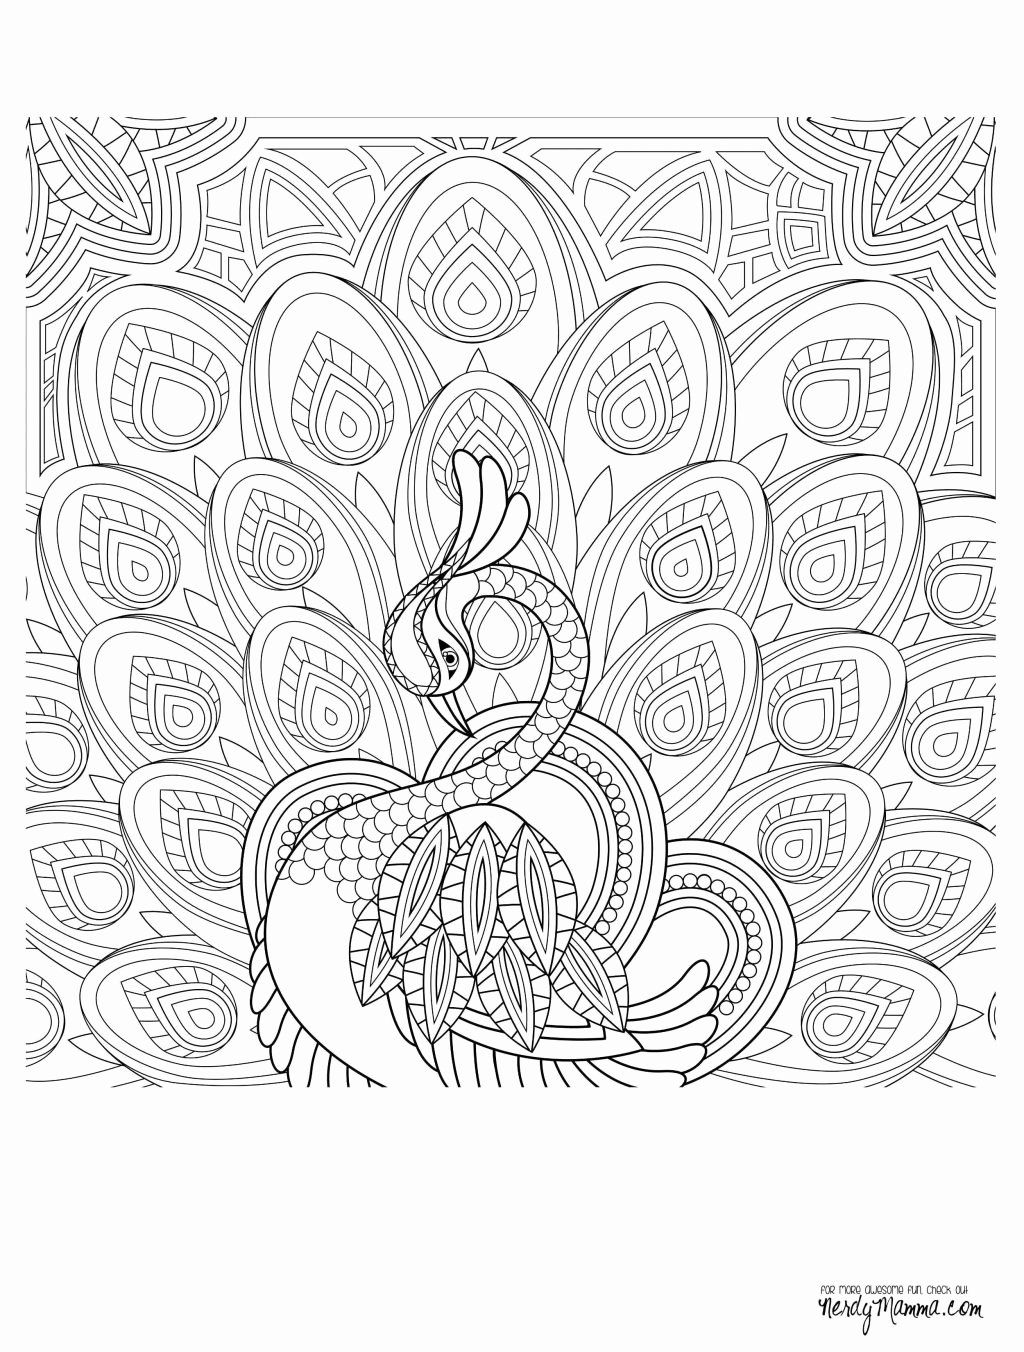 Difficult Coloring Pages Of Animals Luxury Coloring Pages Difficult Coloring Sheets Free Detailed Coloring Pages Mermaid Coloring Pages Pokemon Coloring Pages [ jpg ]